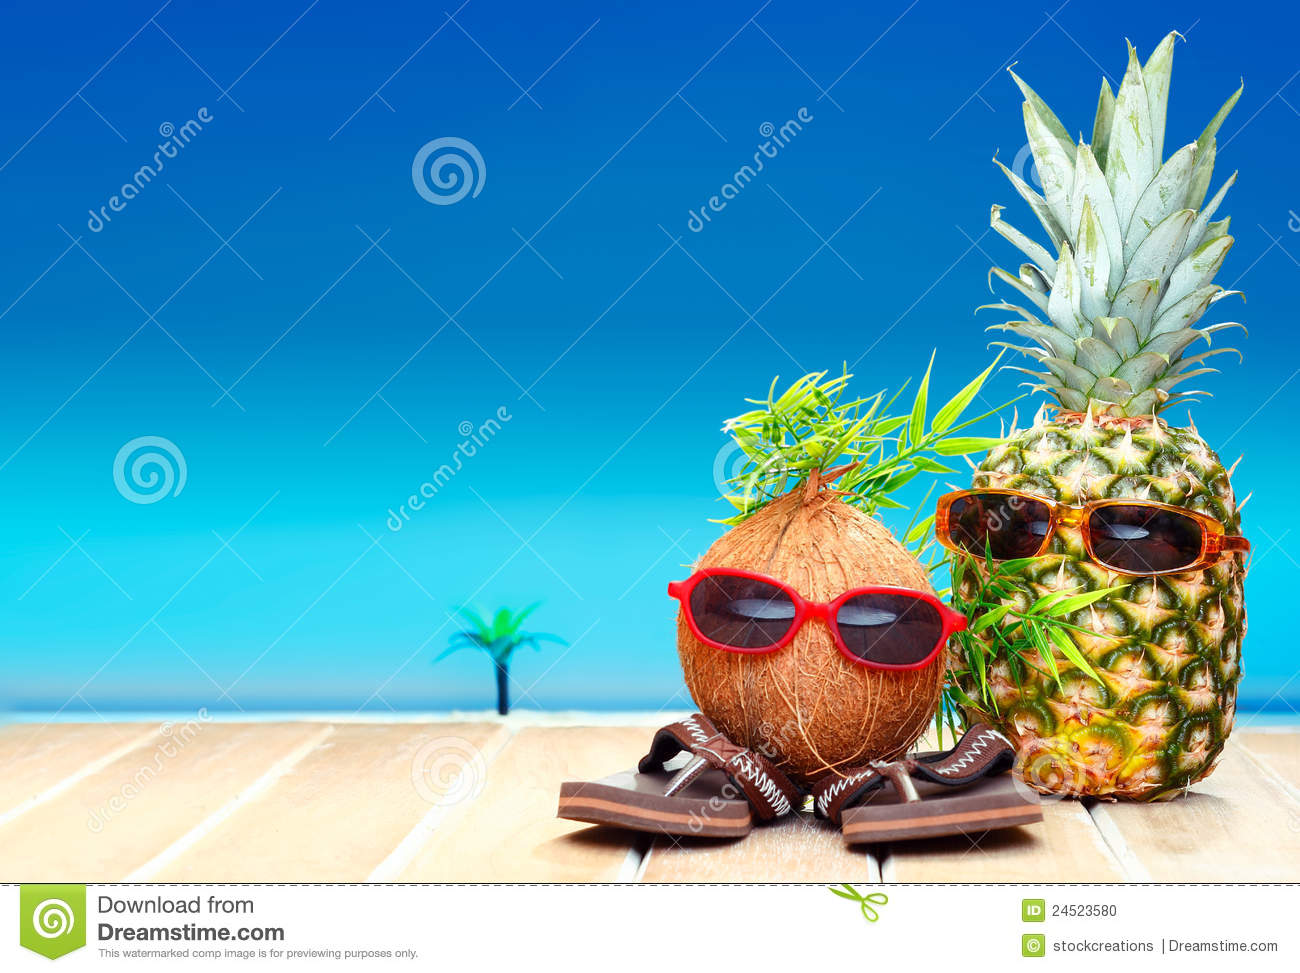 d6a2e72eb8c1a Cool dude pineapple stock image. Image of glasses